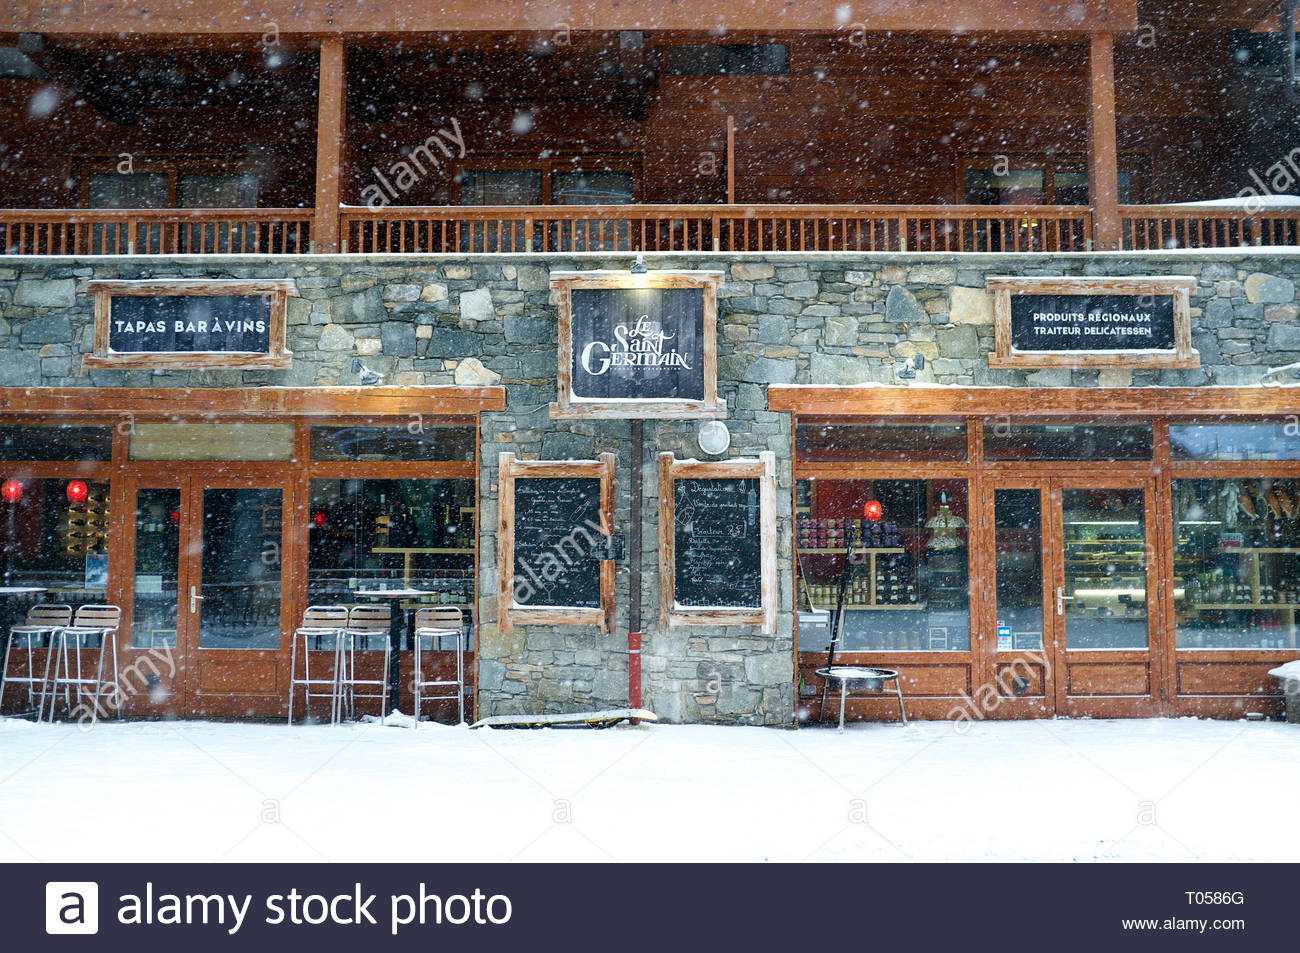 Le Saint Germain (bar & restaurant), at the ski resort in Sainte-Foy-Tarentaise, Auvergne-Rhône-Alpes region in south-eastern France. Stock Photo